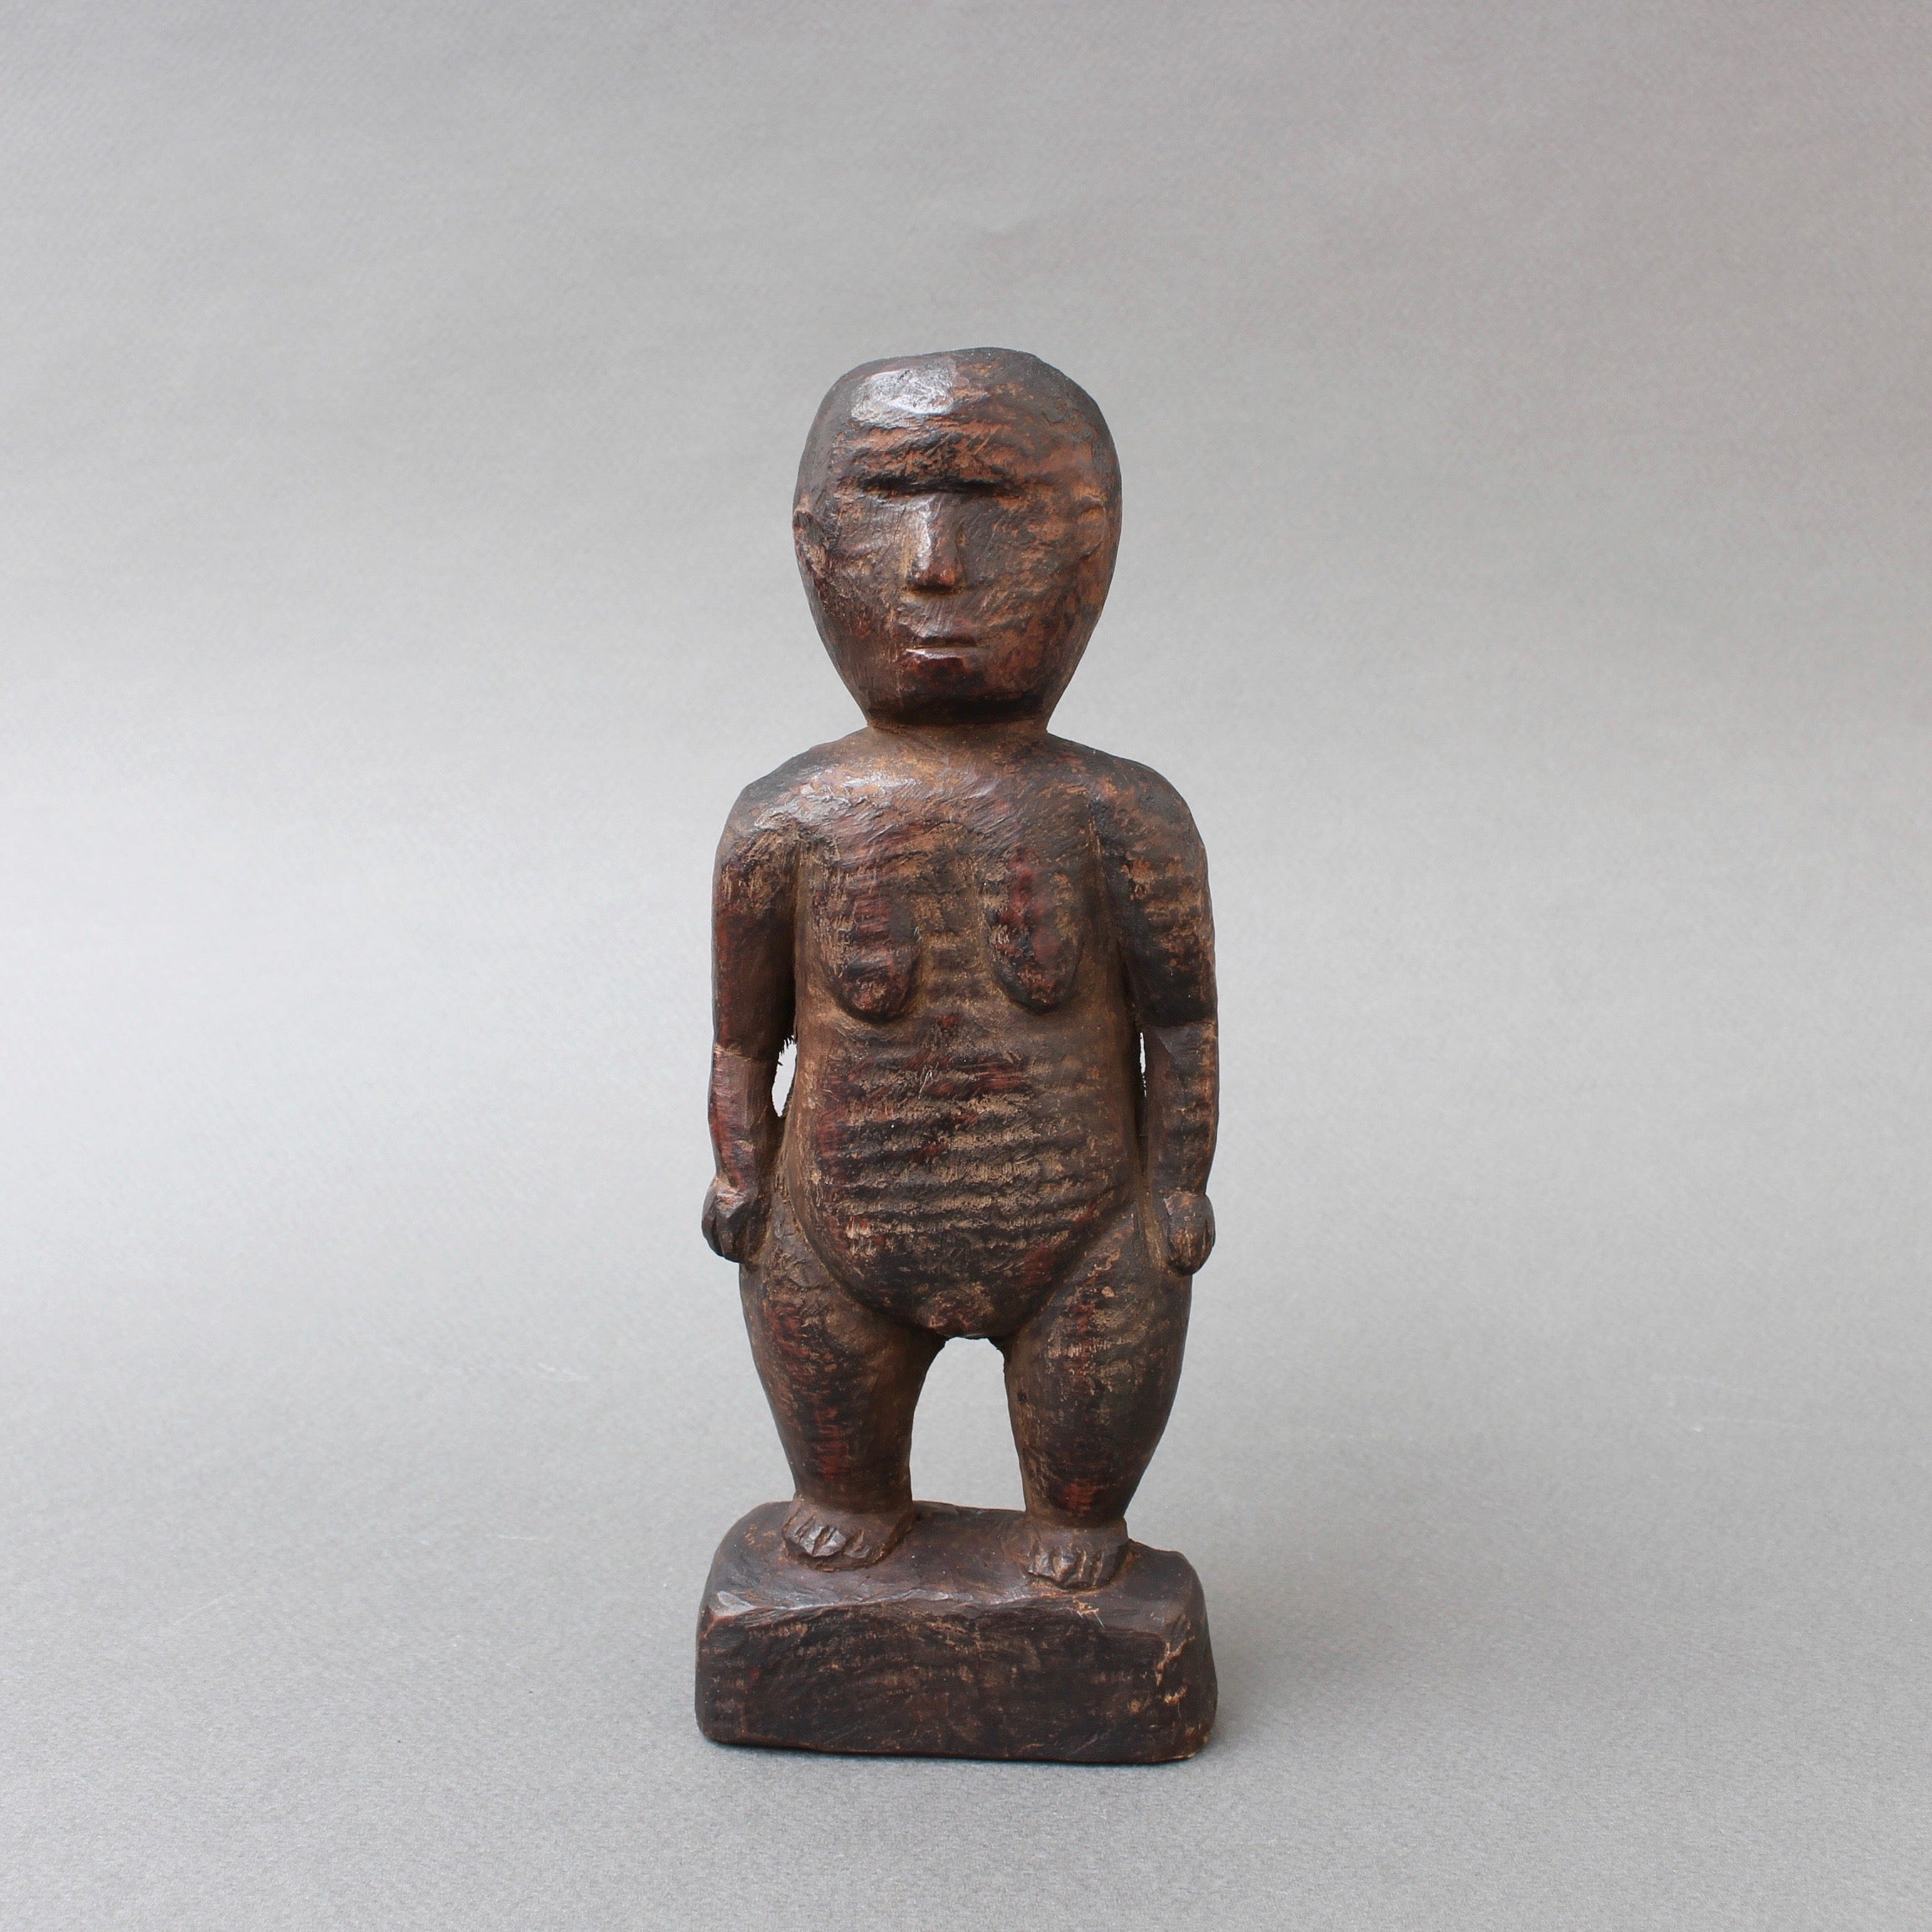 Wooden Carving of Female Figure from Sumba Island, Indonesia (circa 1960s)